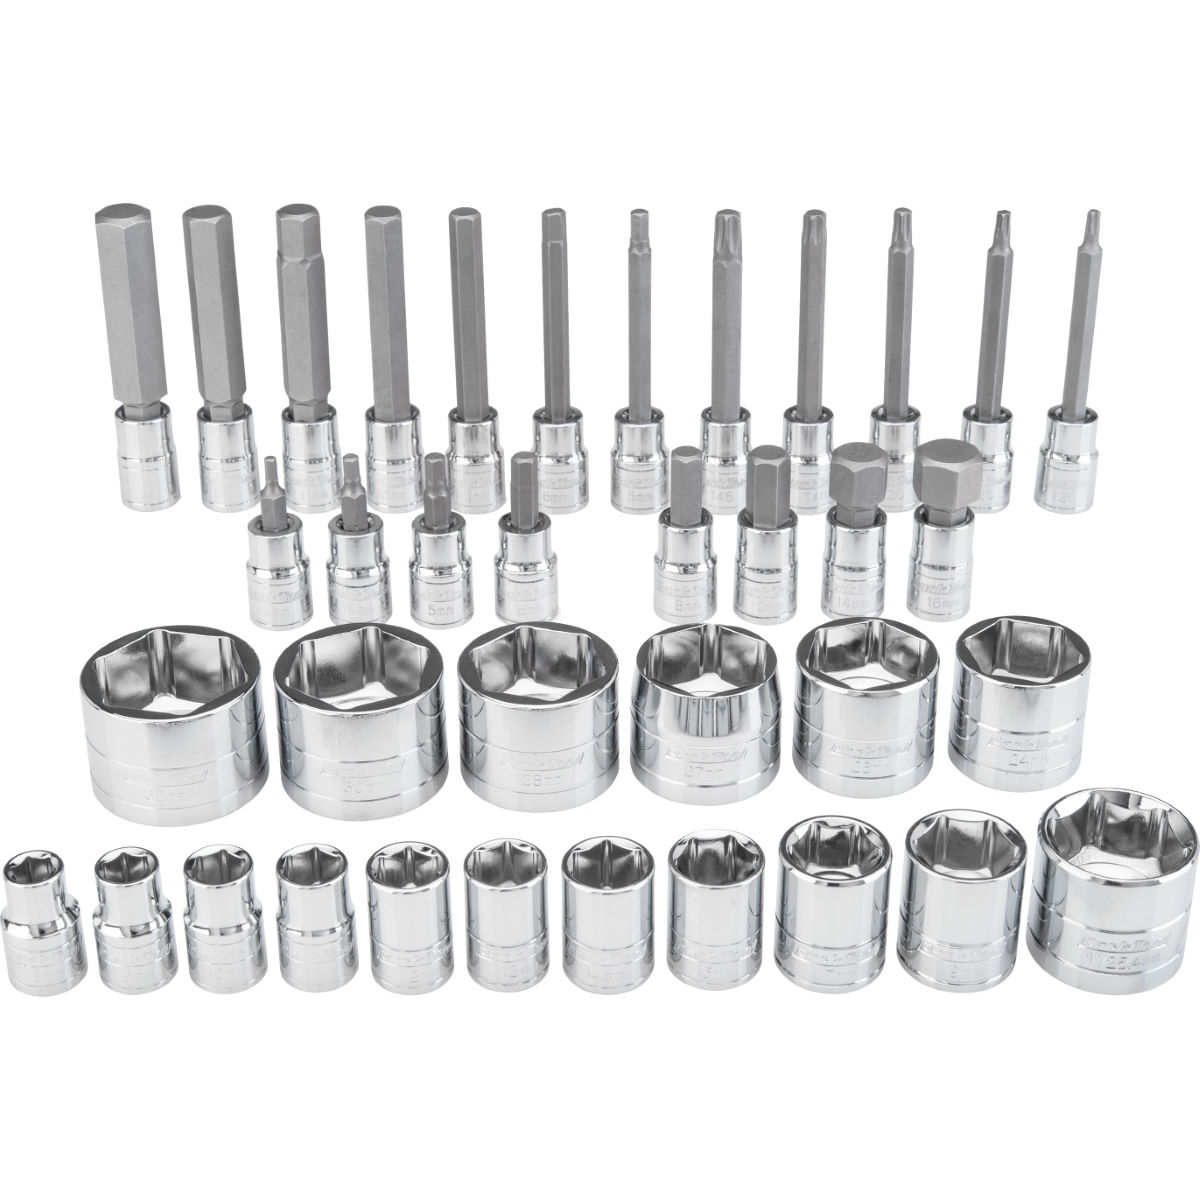 Park Tool Socket & Bit Set SBS-3